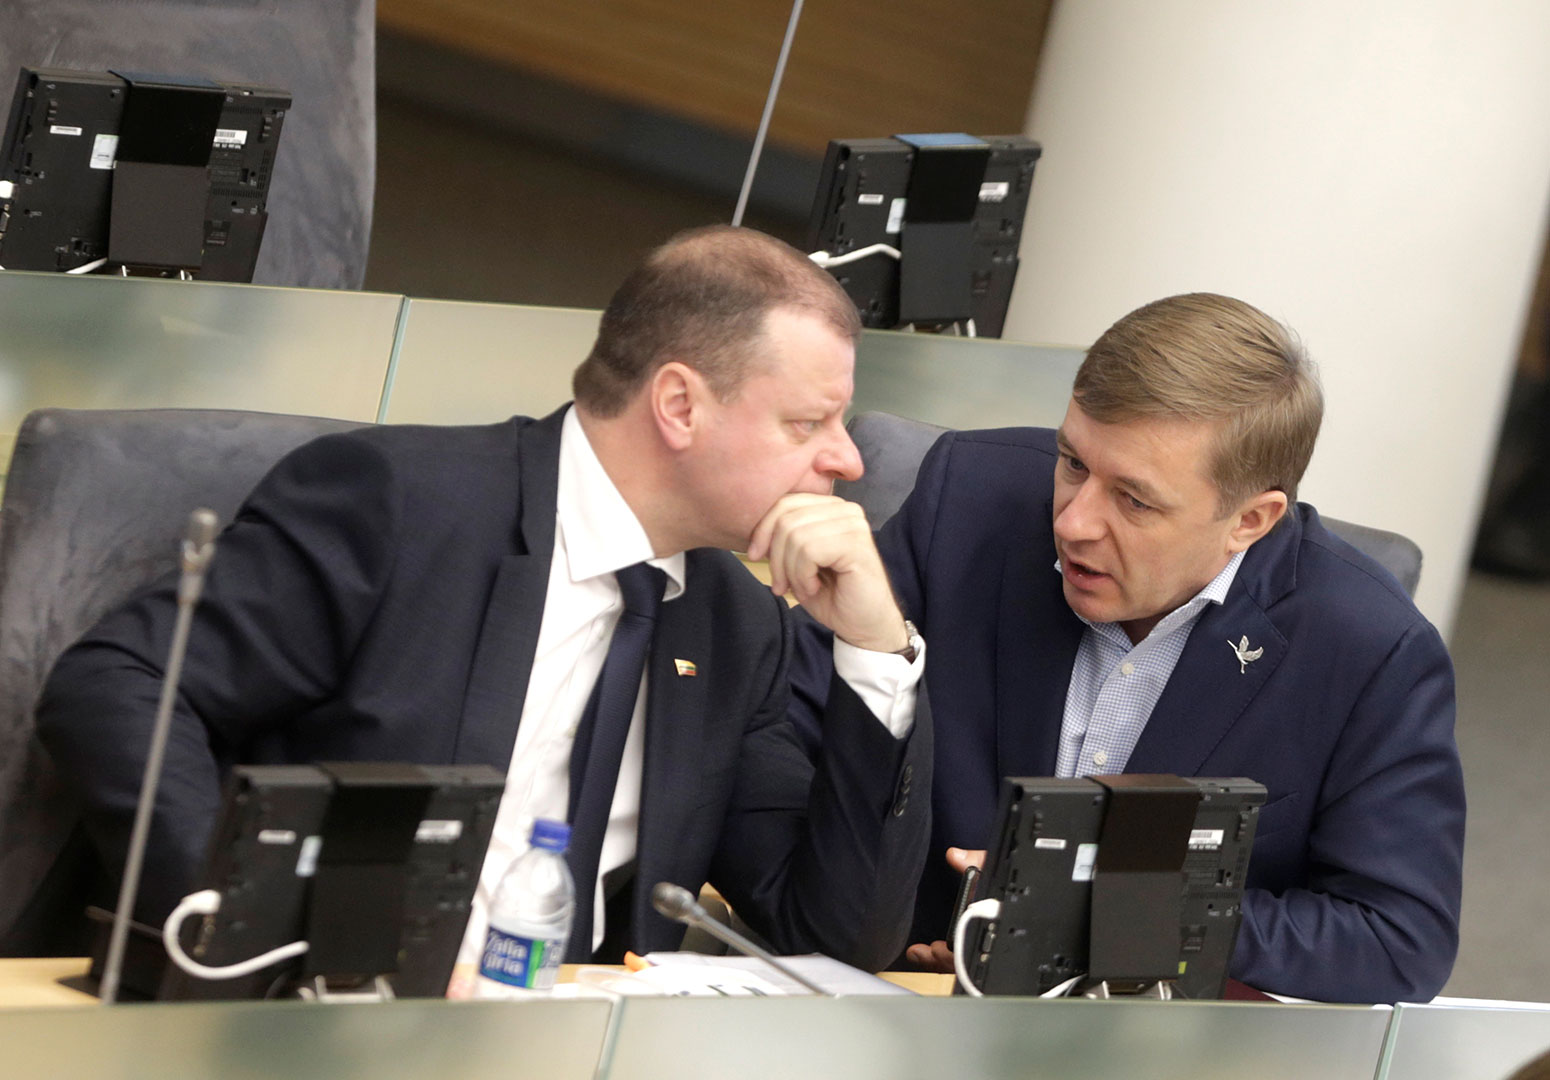 Saulius Skvernelis listens to Ramunas Karbauskis before his swearing in as prime minister in the Seimas, the Lithuanian parliament, December 2016. Credit: Ints Kalnins / Reuters